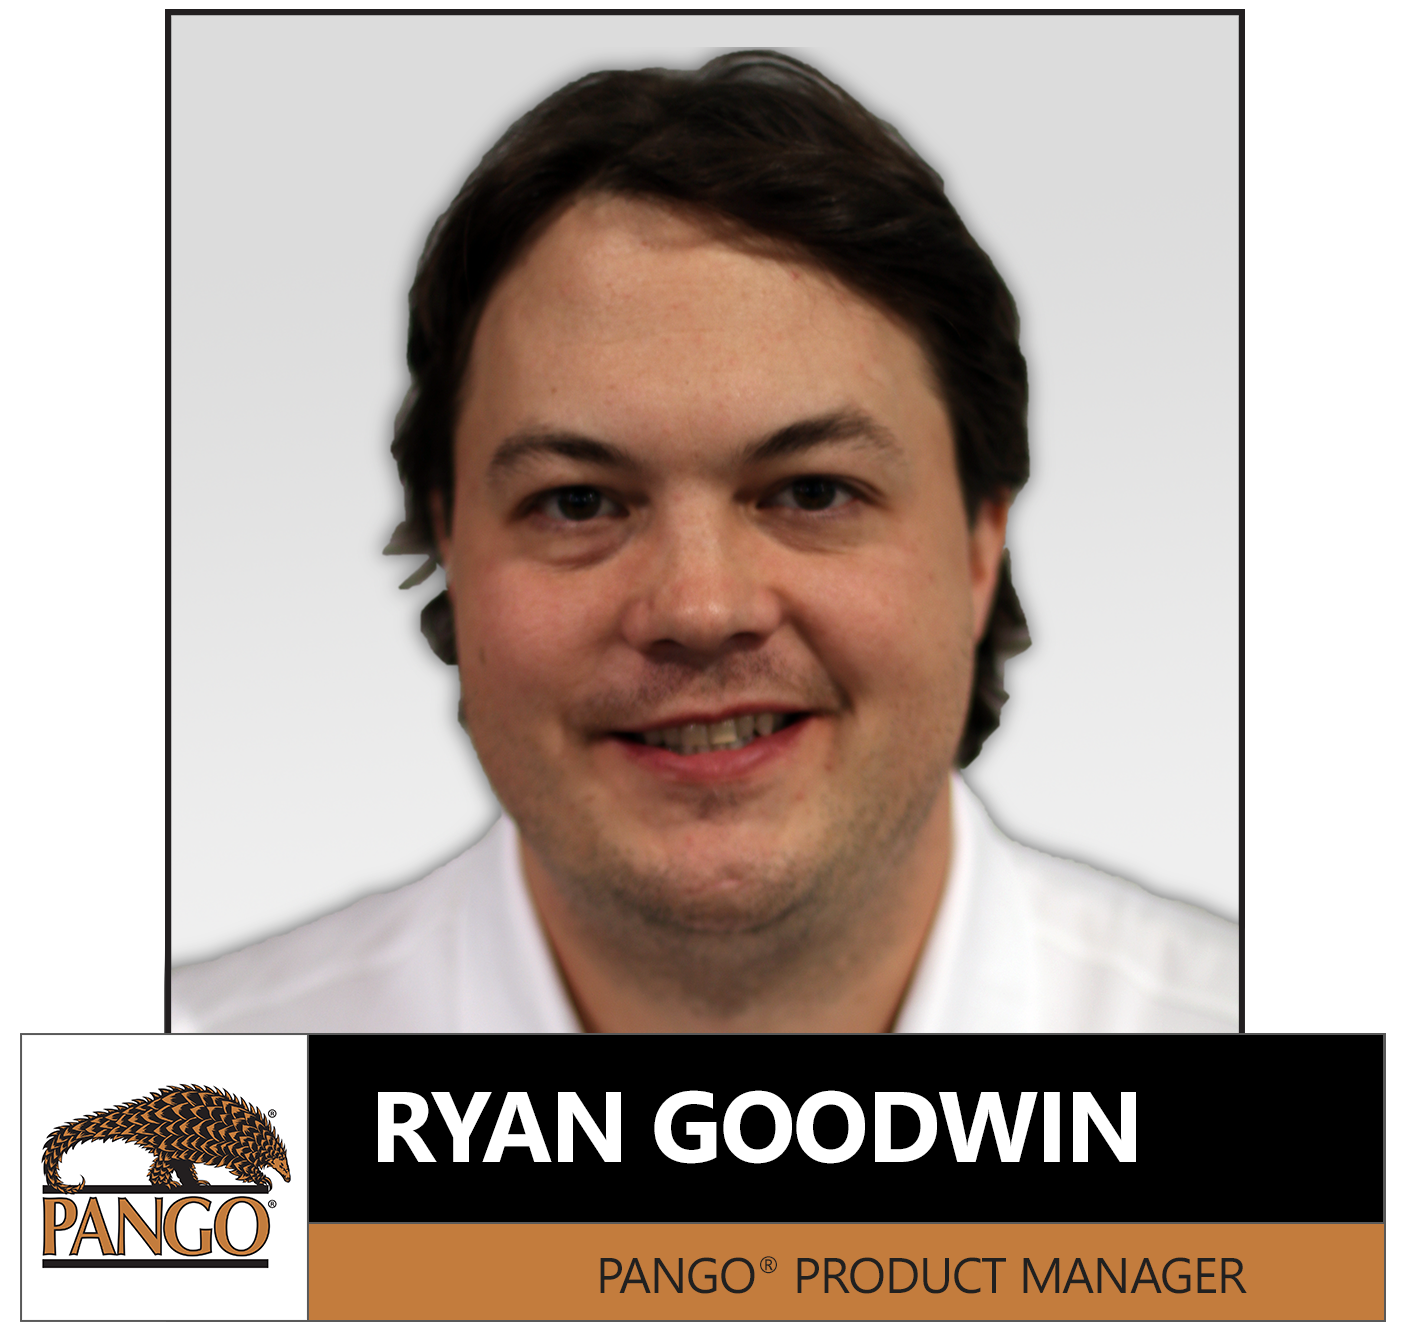 Ryan-Goodwin-Pango-Wrap.png